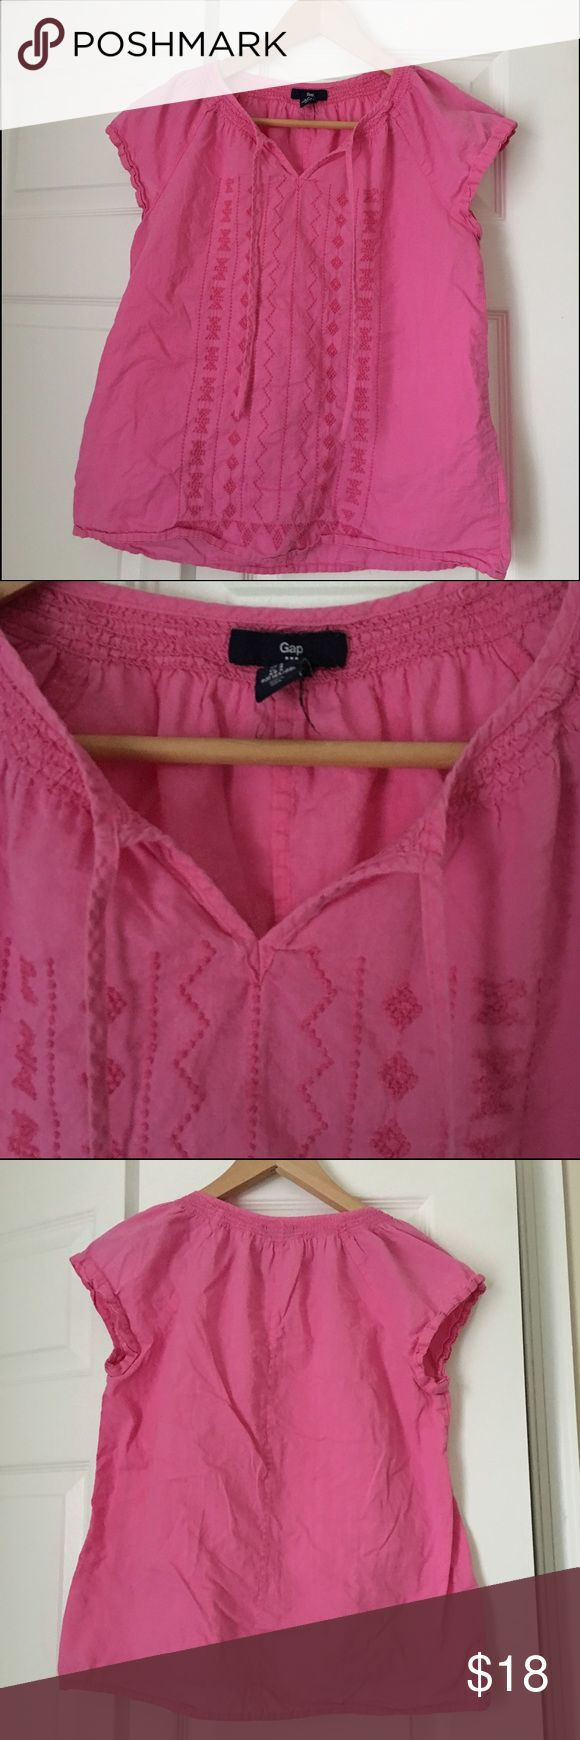 Gap pink embroidered short sleeved top Cute top, purchased from gap outlet. Slight wash wear, pls excuse the wrinkles. GAP Tops Blouses